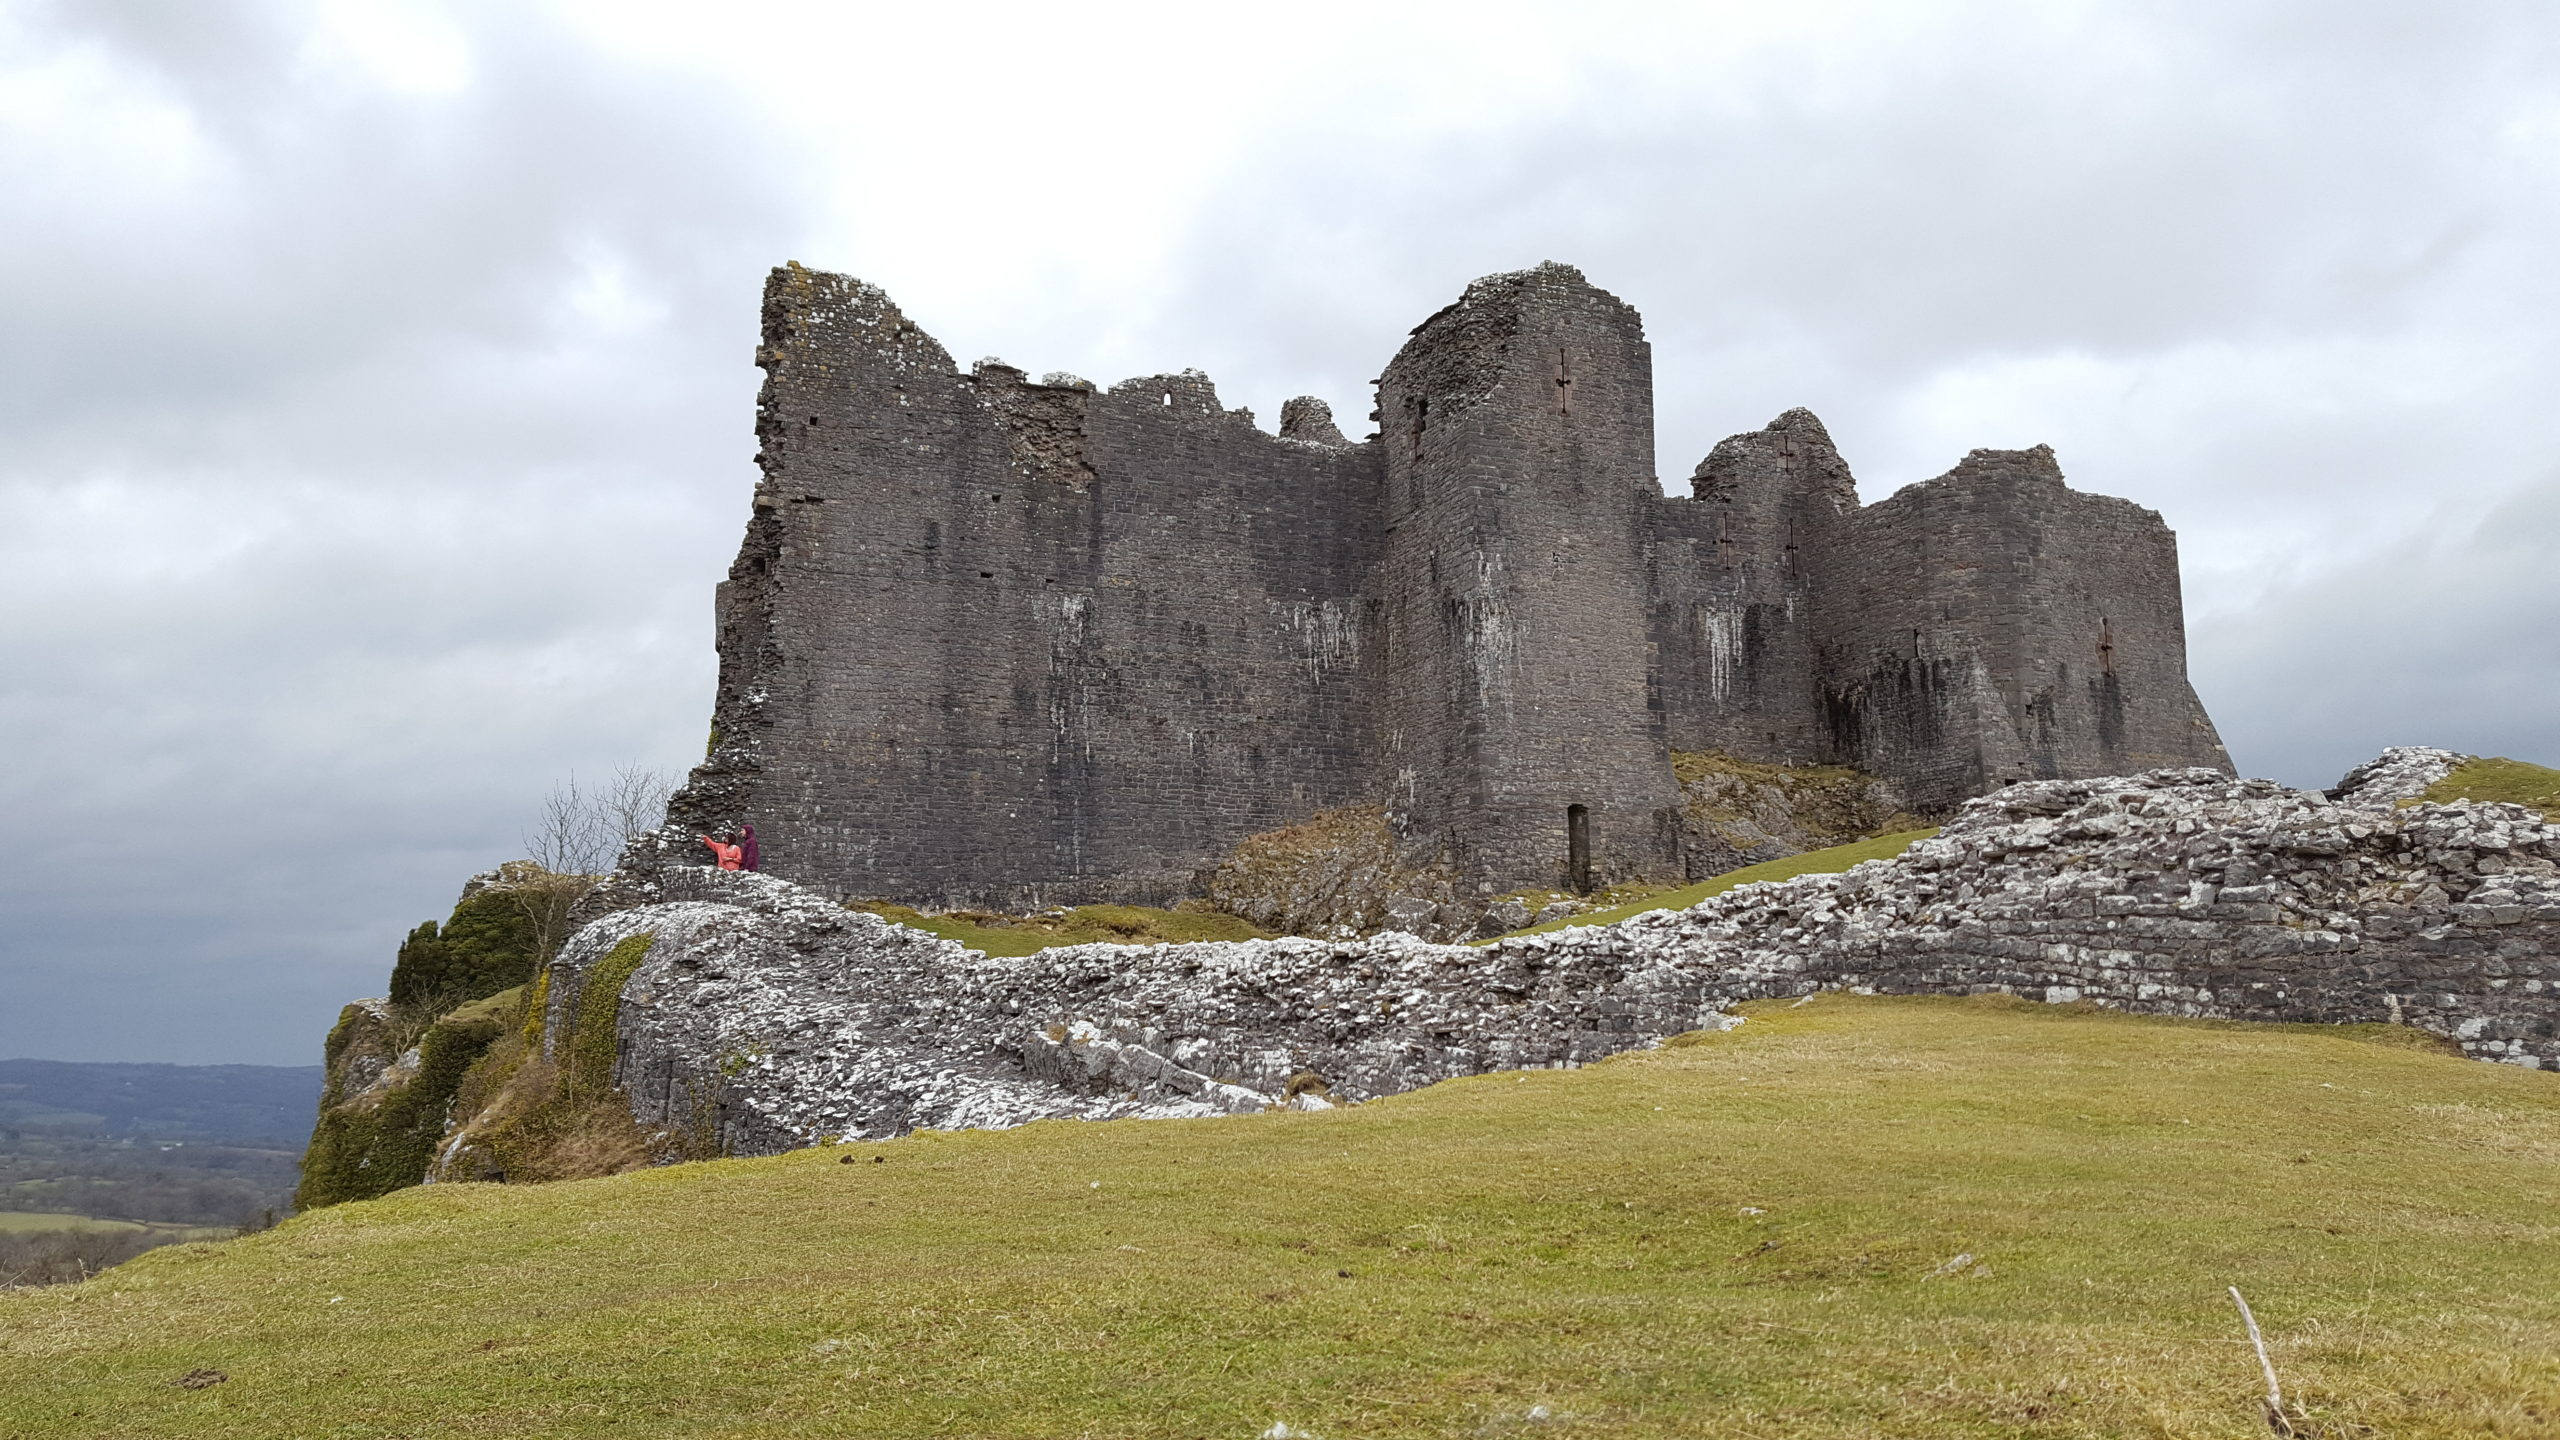 Carreg Cennen in the Wars of the Roses